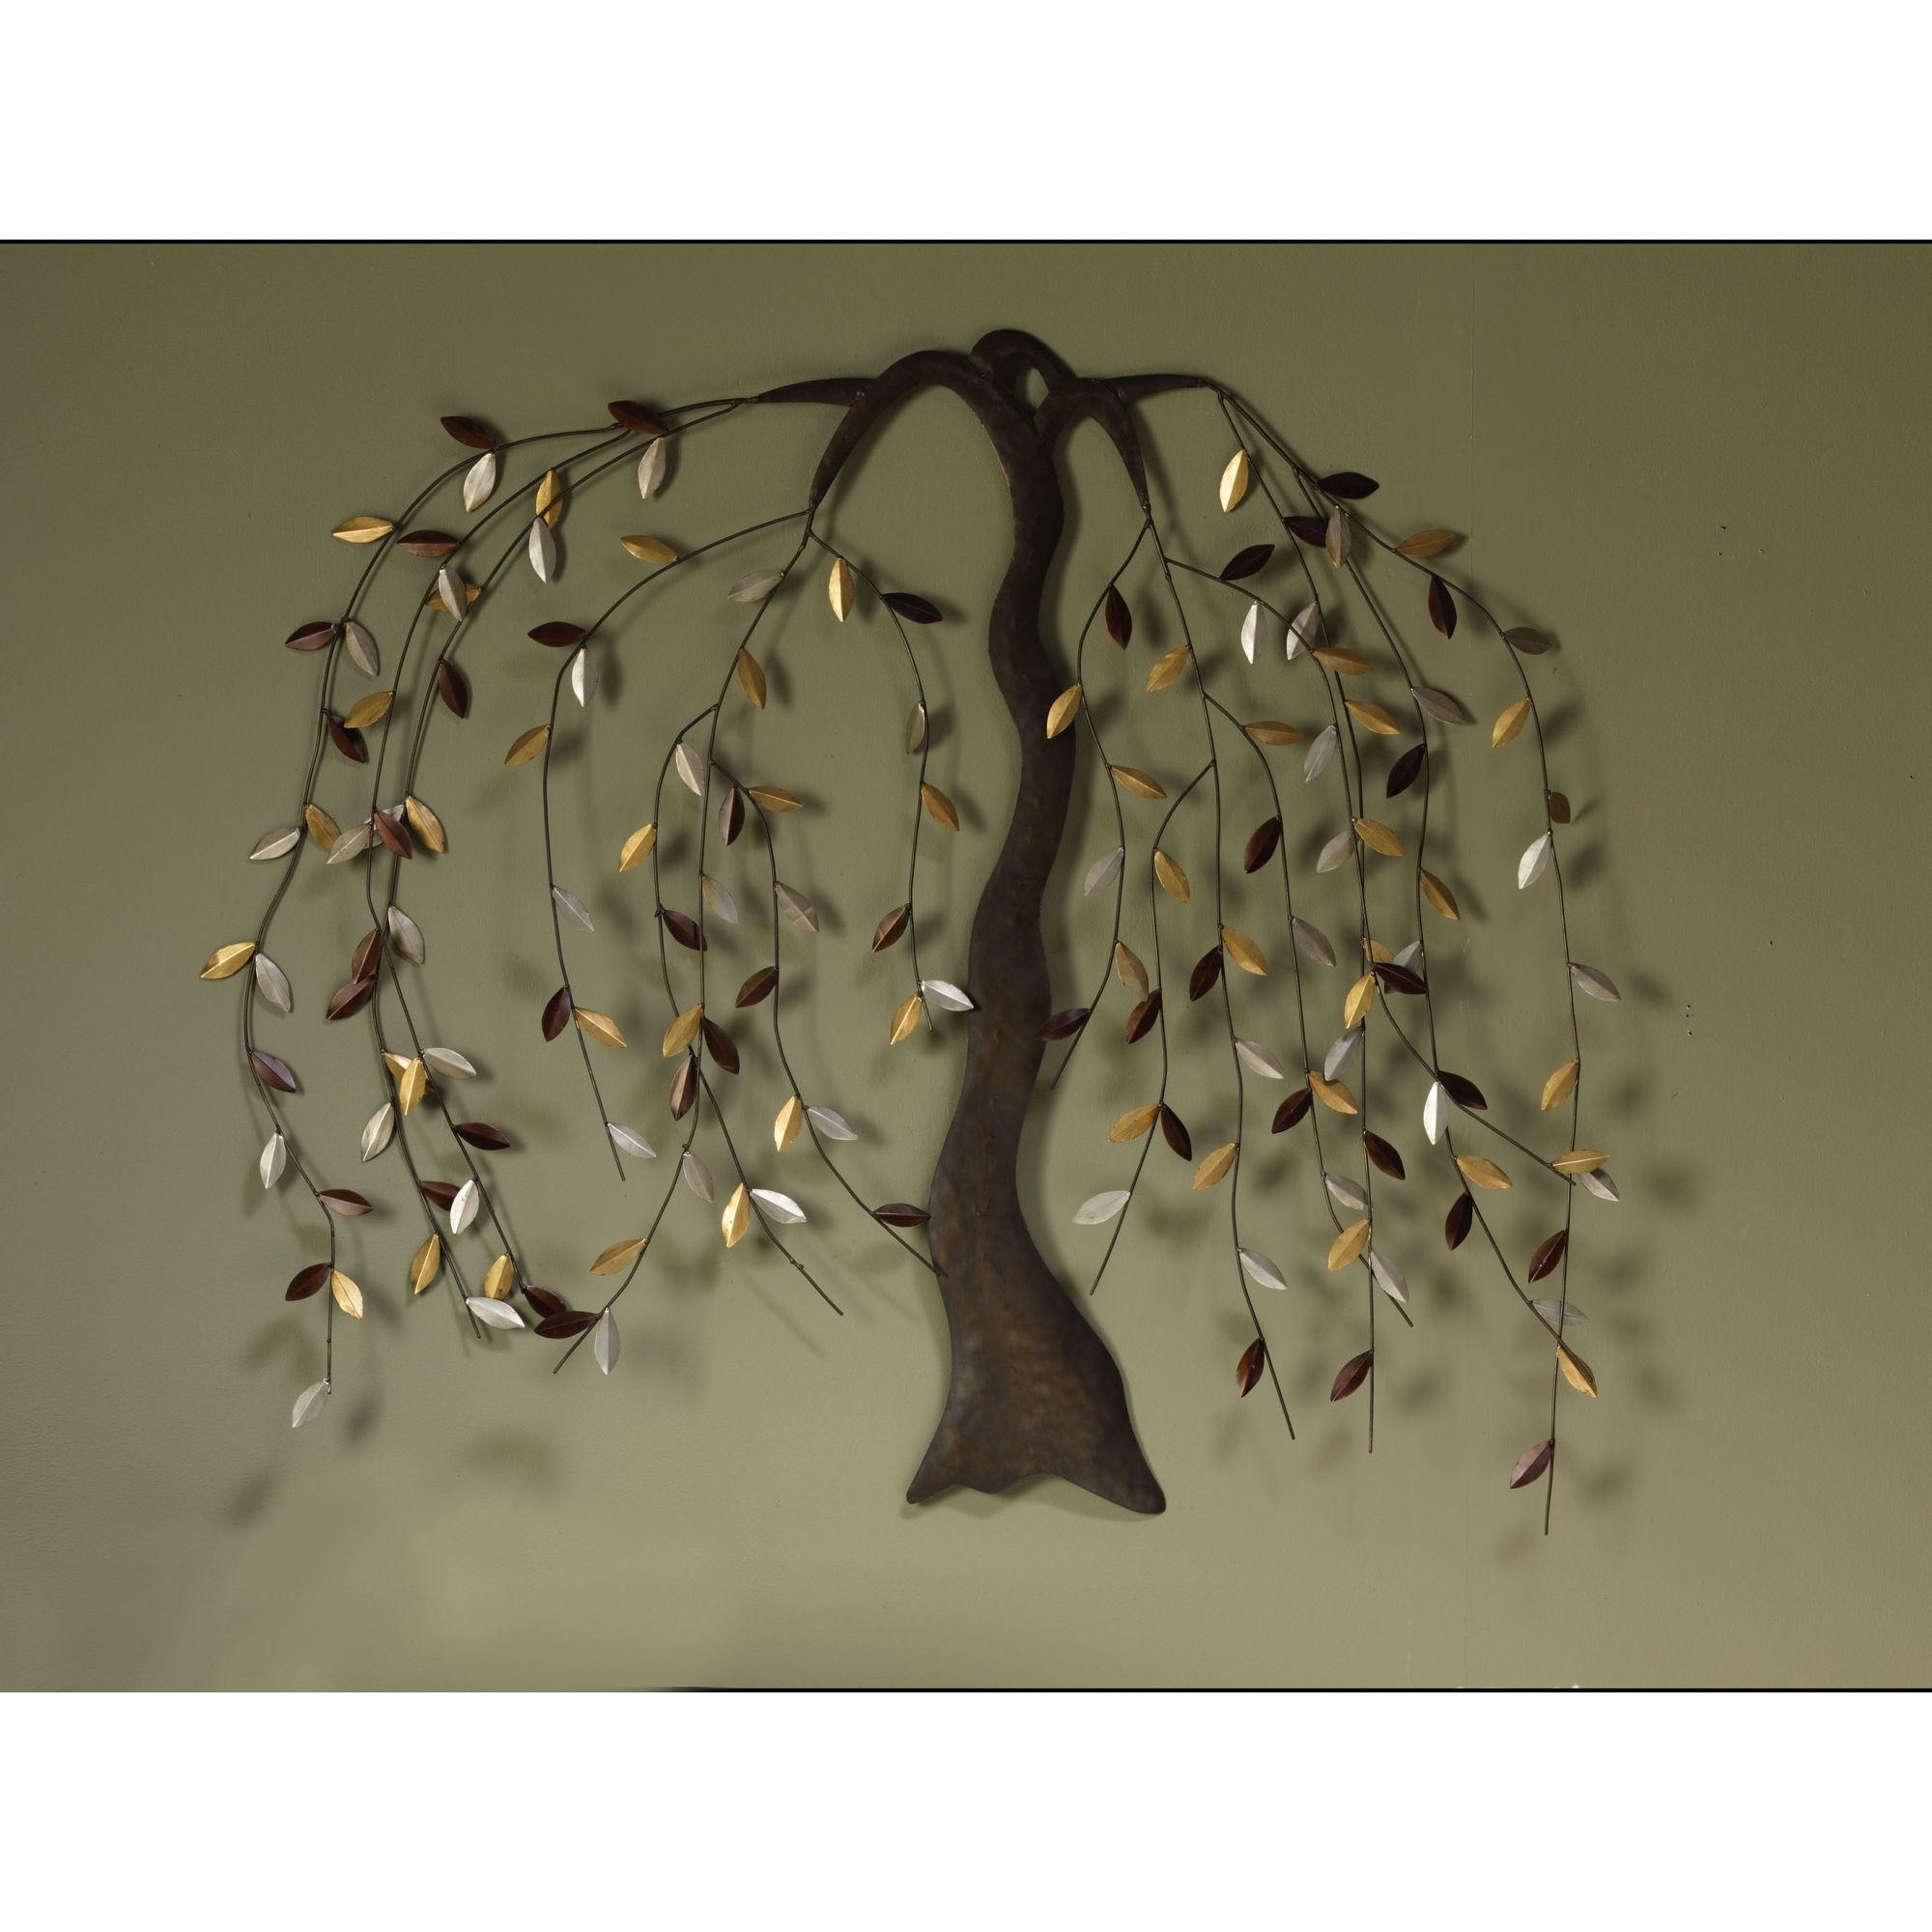 Appealing Wall Design Metal Art Wall Hangings Wall Decor Metal Pertaining To Metal Art For Wall Hangings (Image 1 of 20)